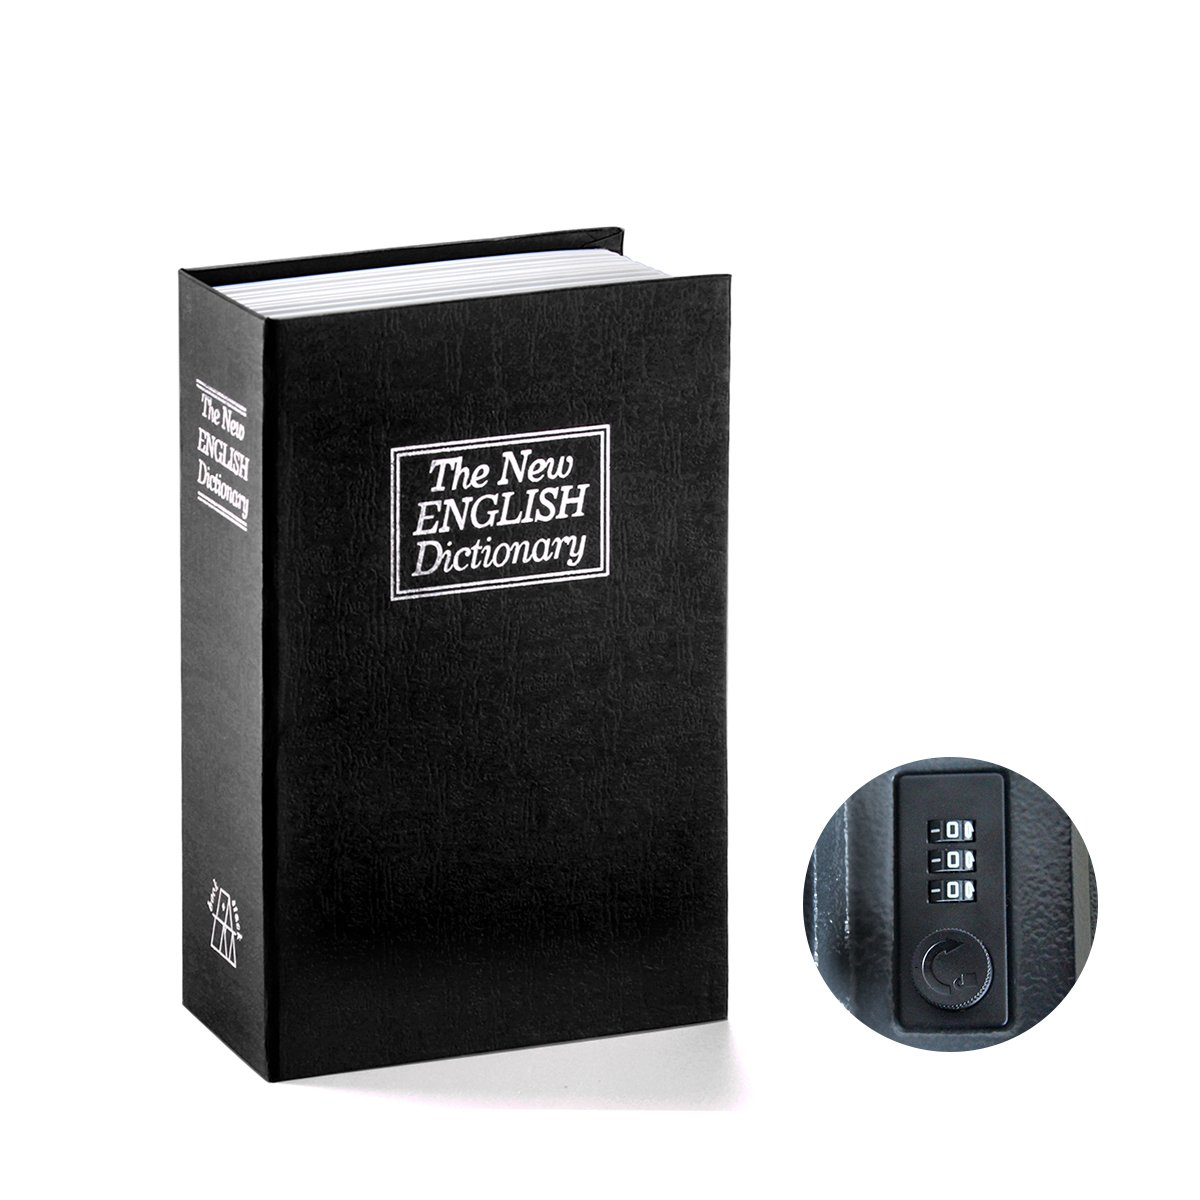 Book Safe with Combination Lock - Jssmst Home Dictionary Diversion Metal Safe Lock Box 2017, SM-BS0401S, Black Small